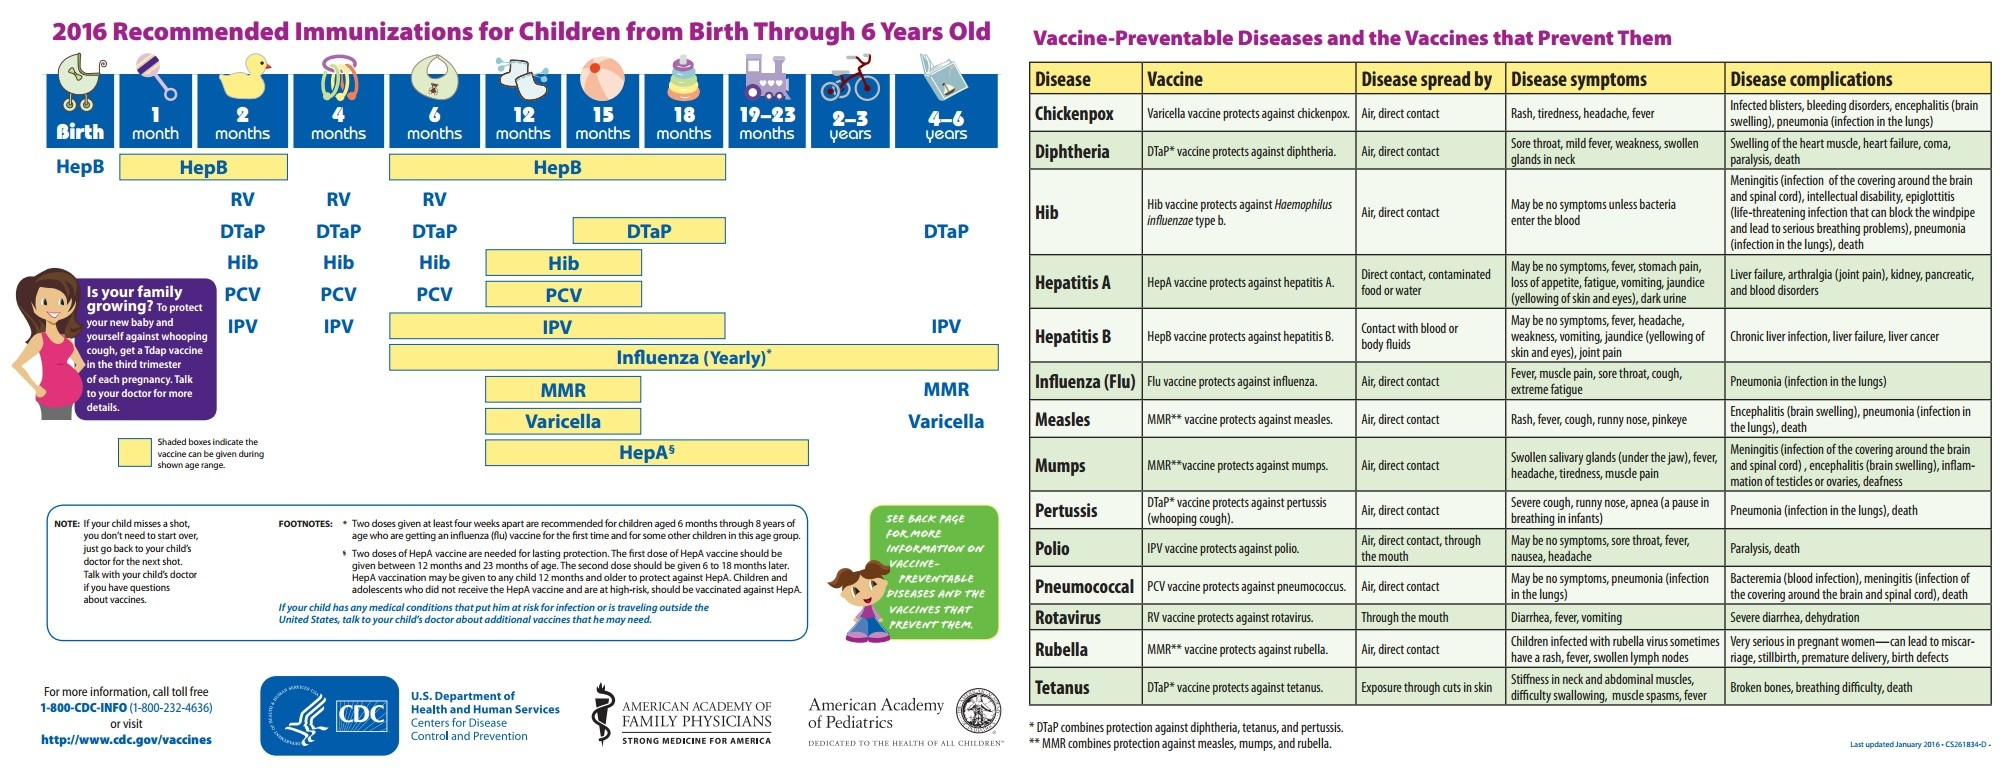 Graphics courtesy U.S. Centers for Disease Control and Prevention